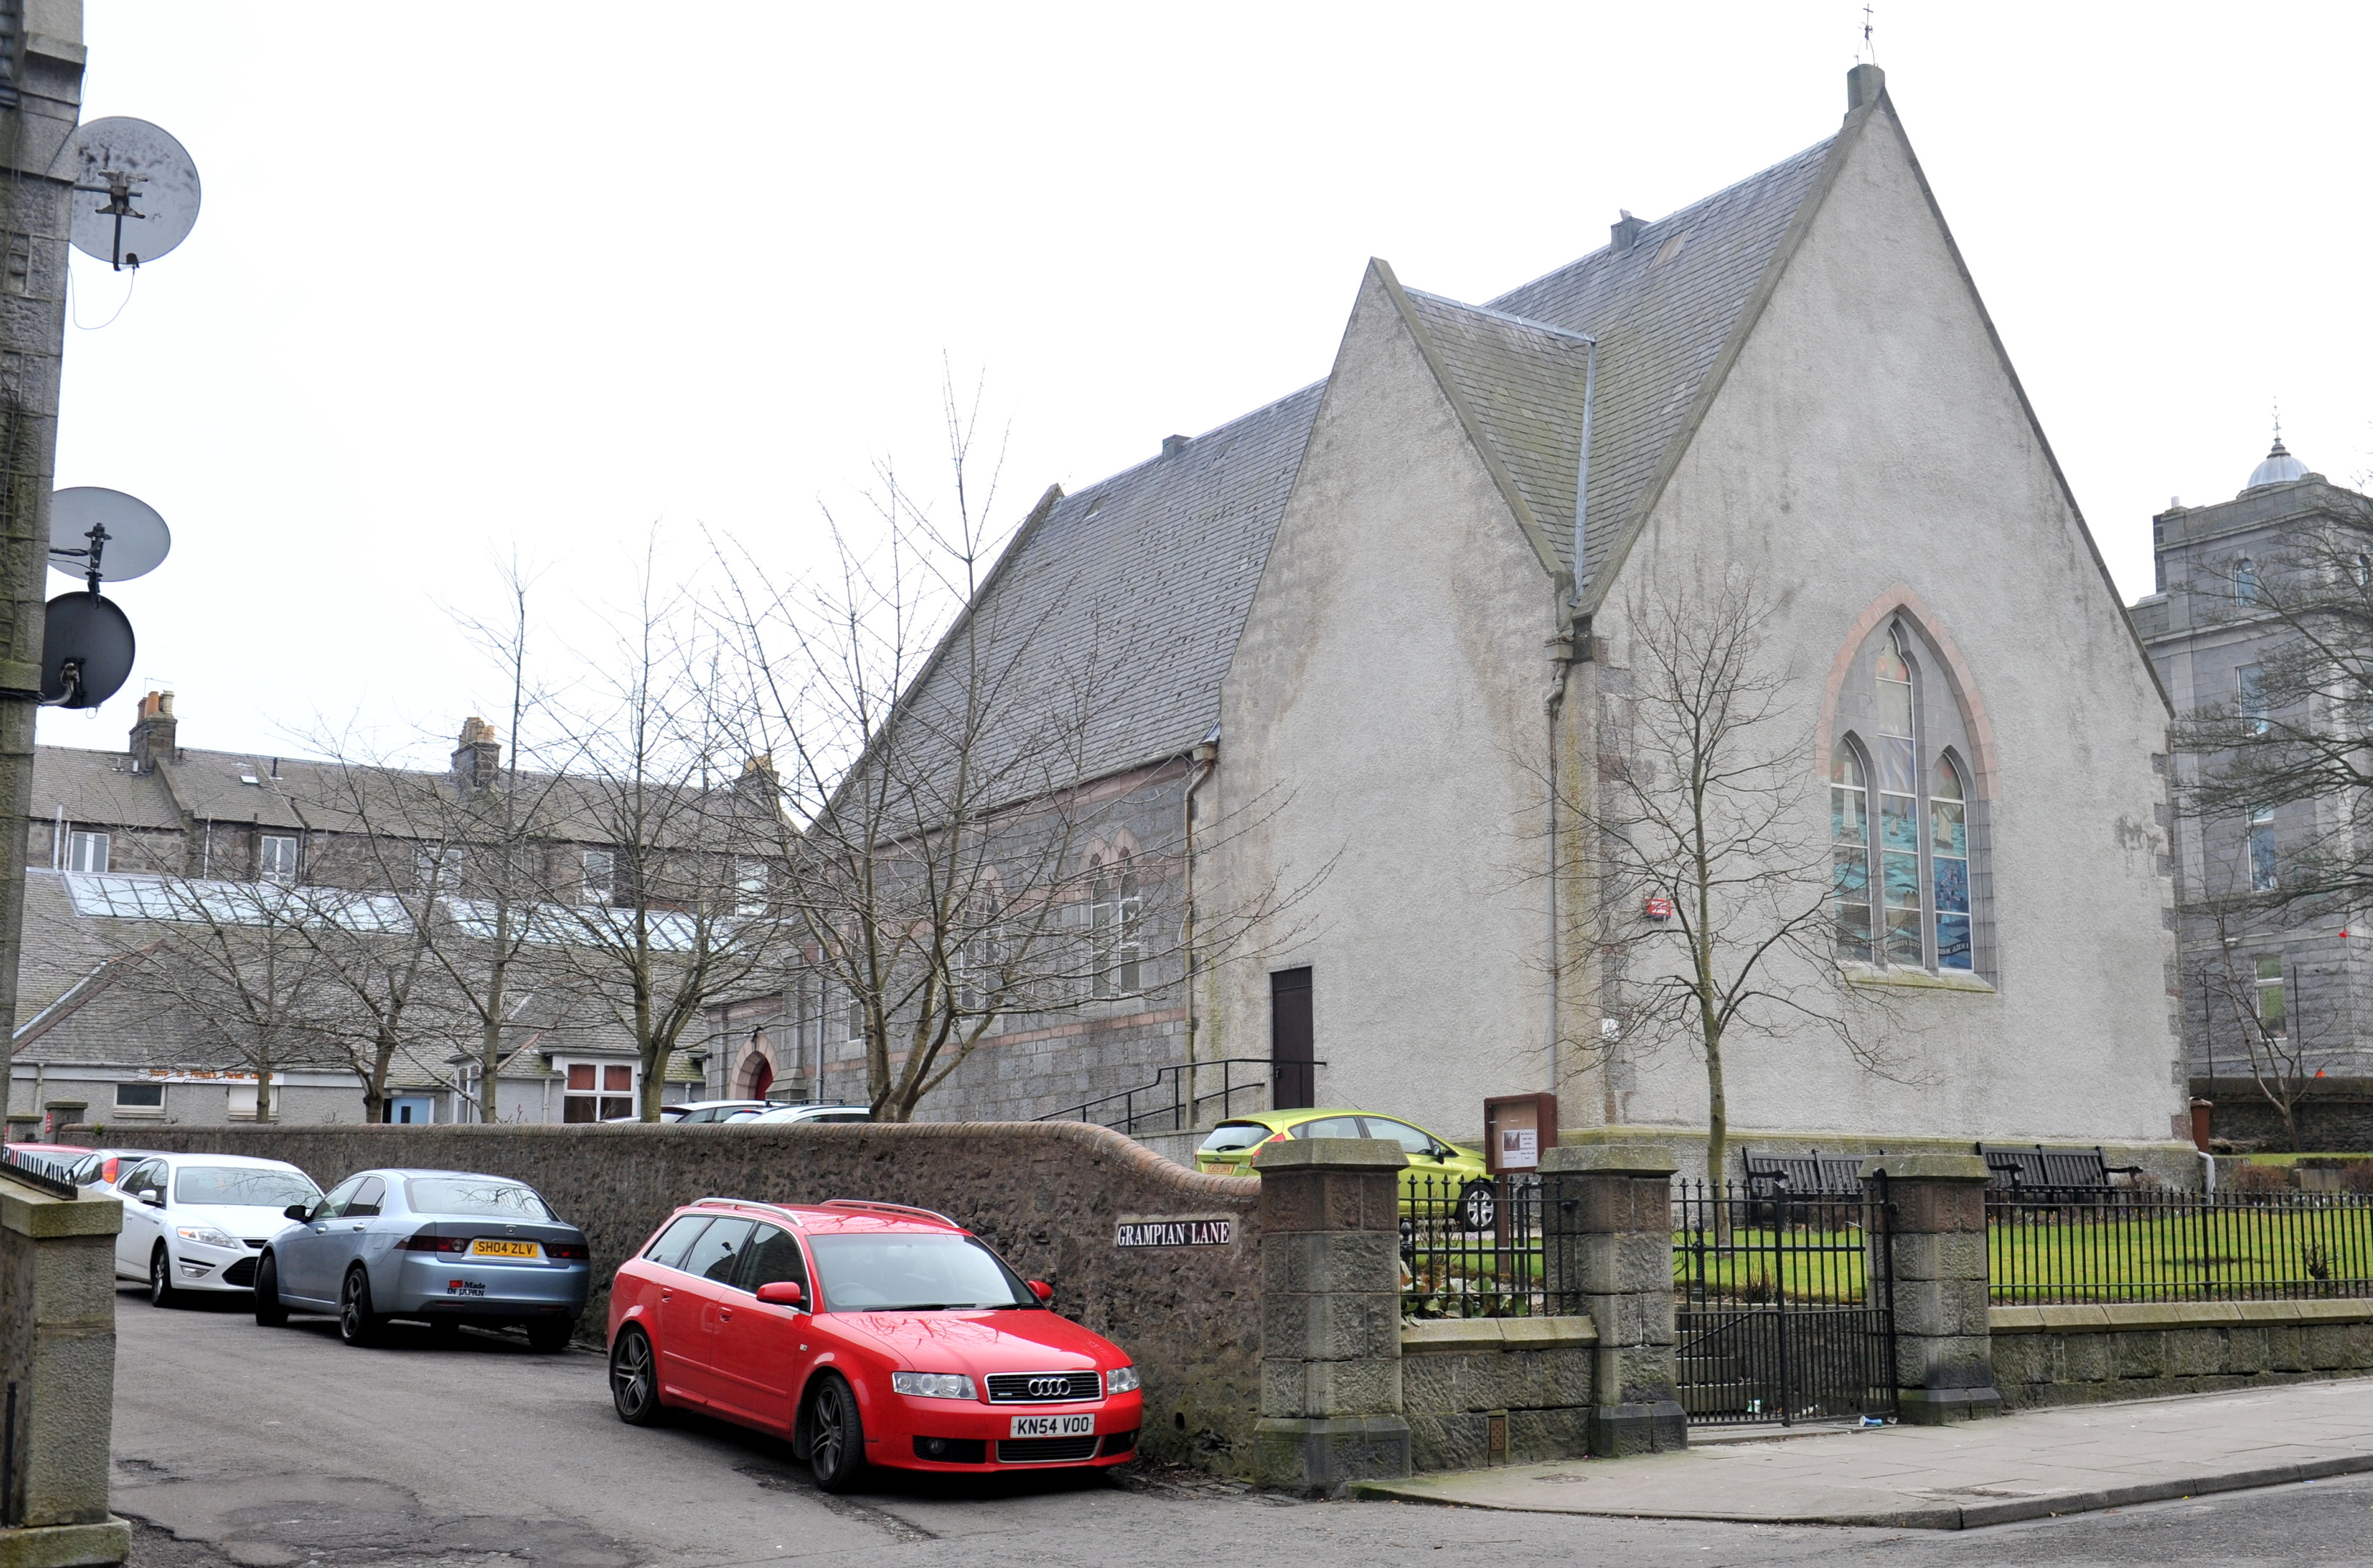 Classes could be held at St Fittick's Parish Church.